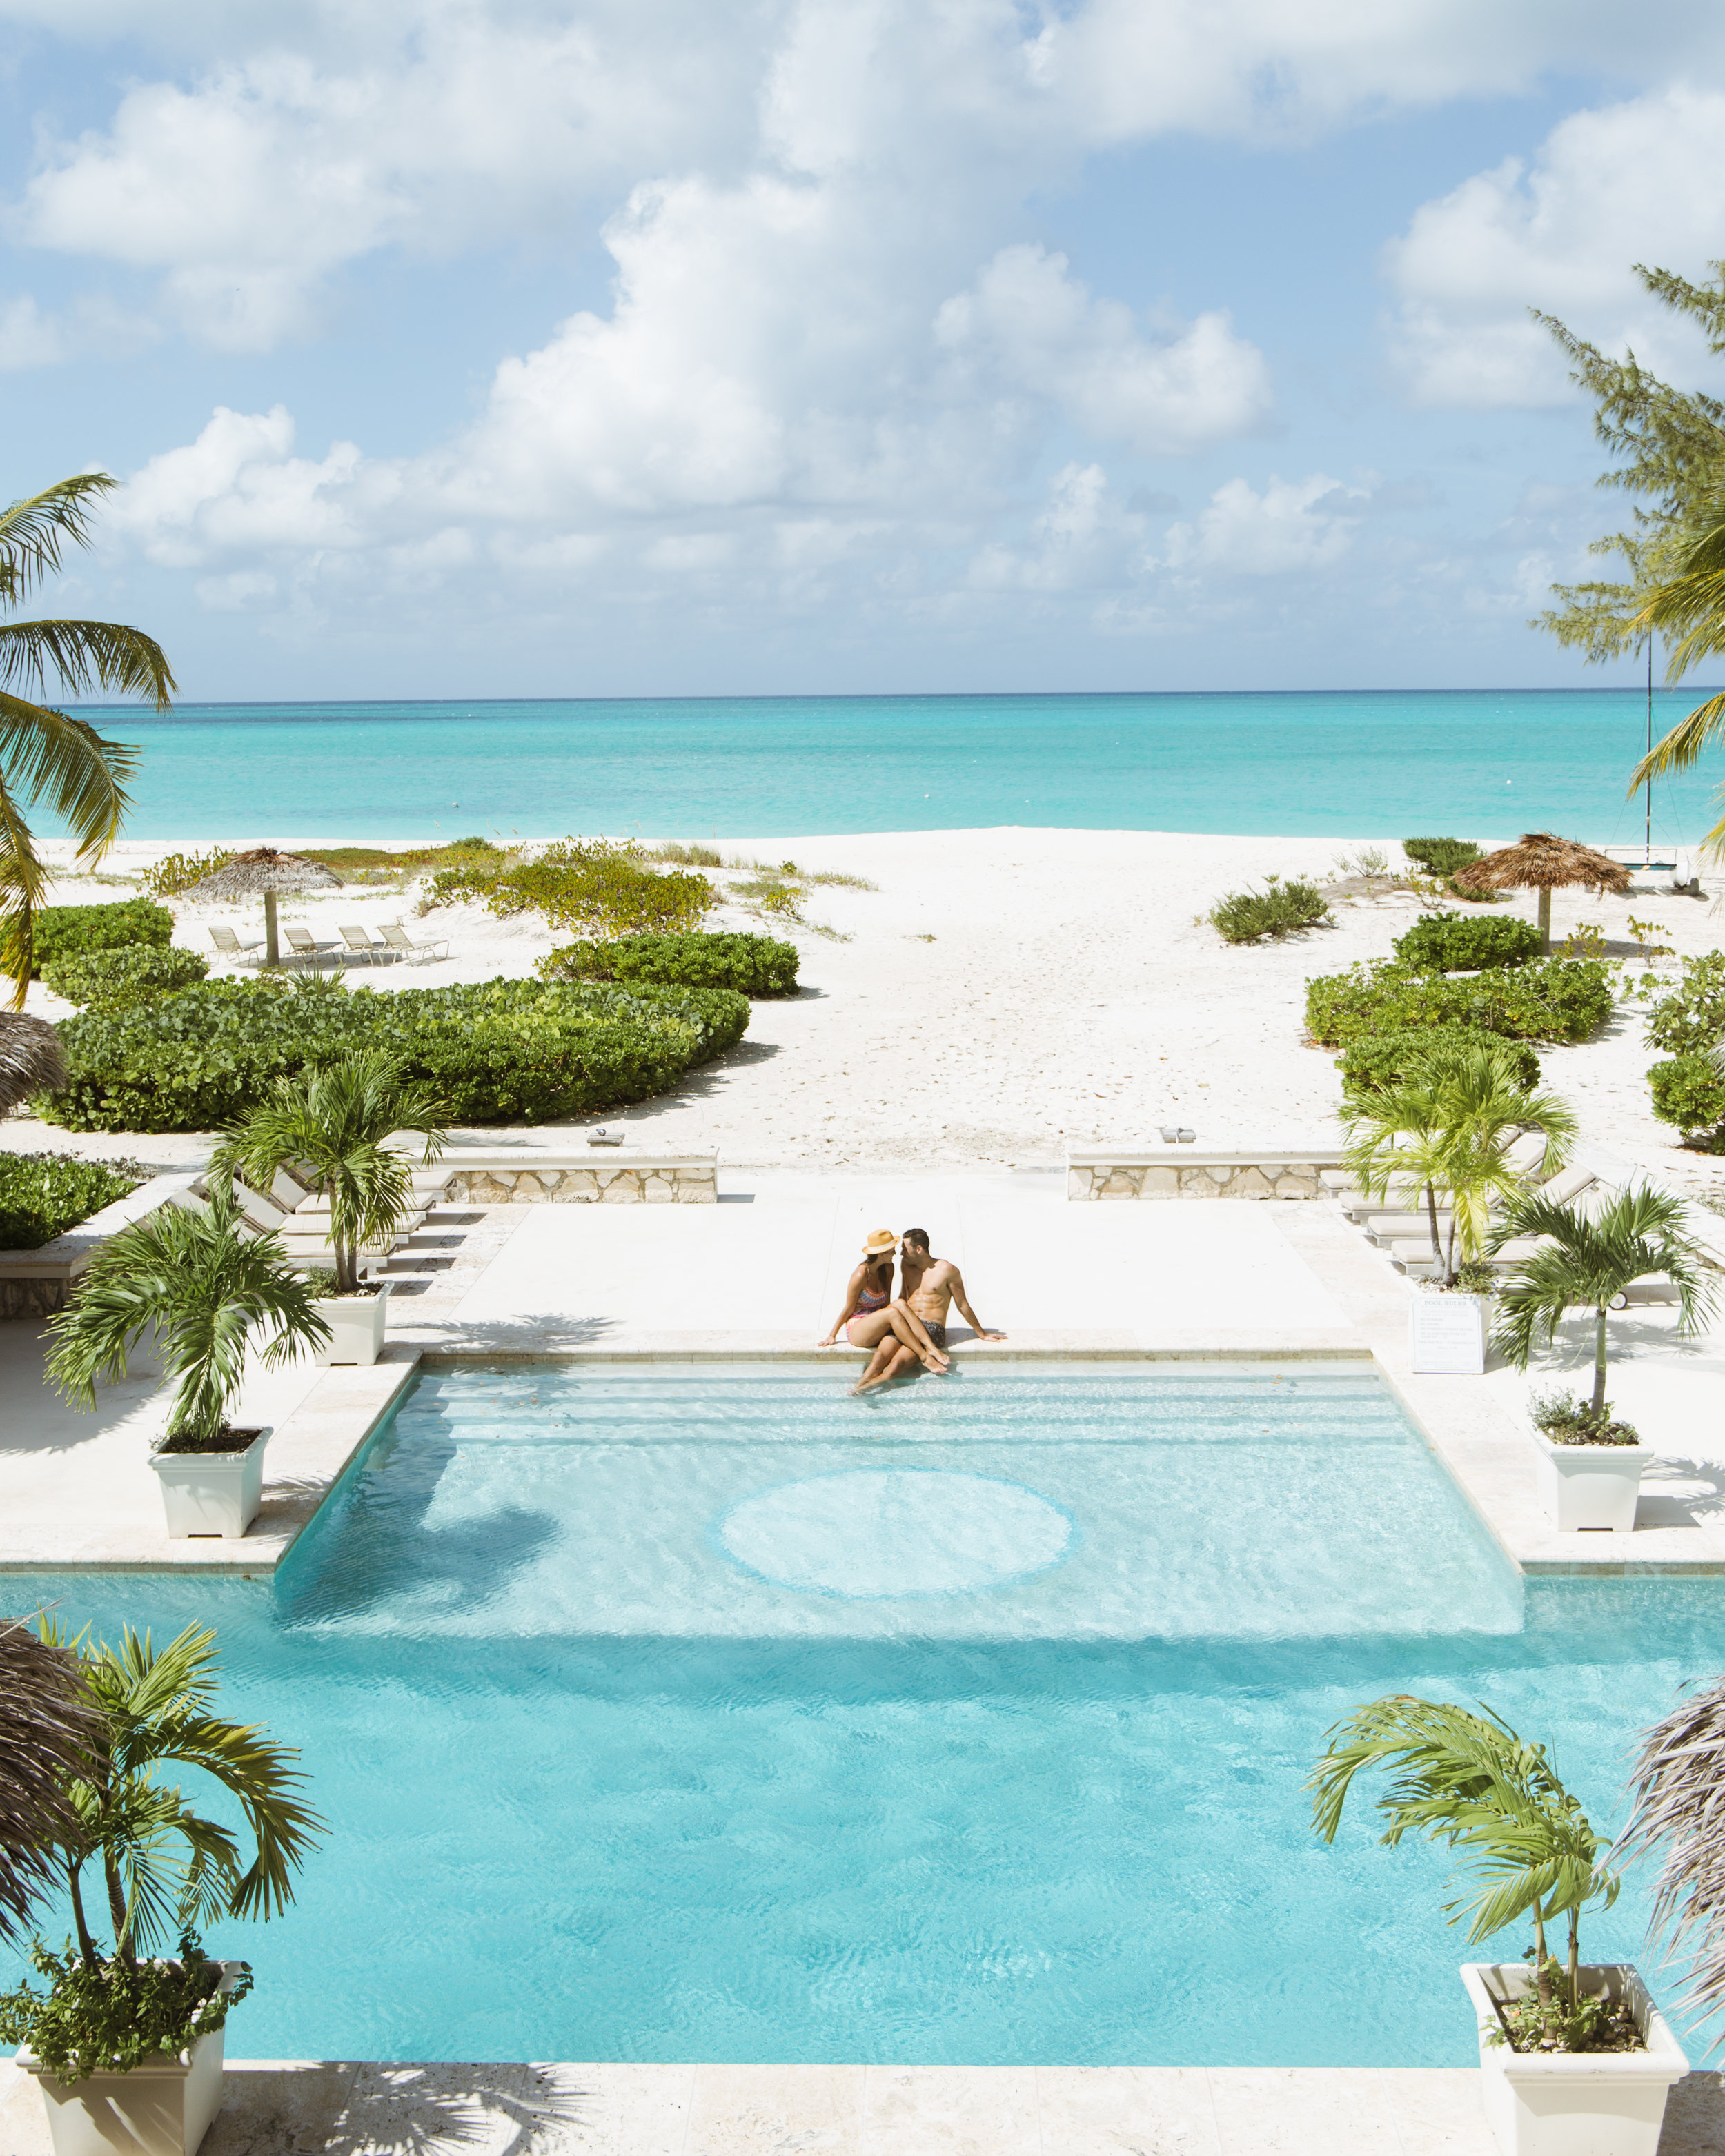 The Best Beach in Turks and Caicos